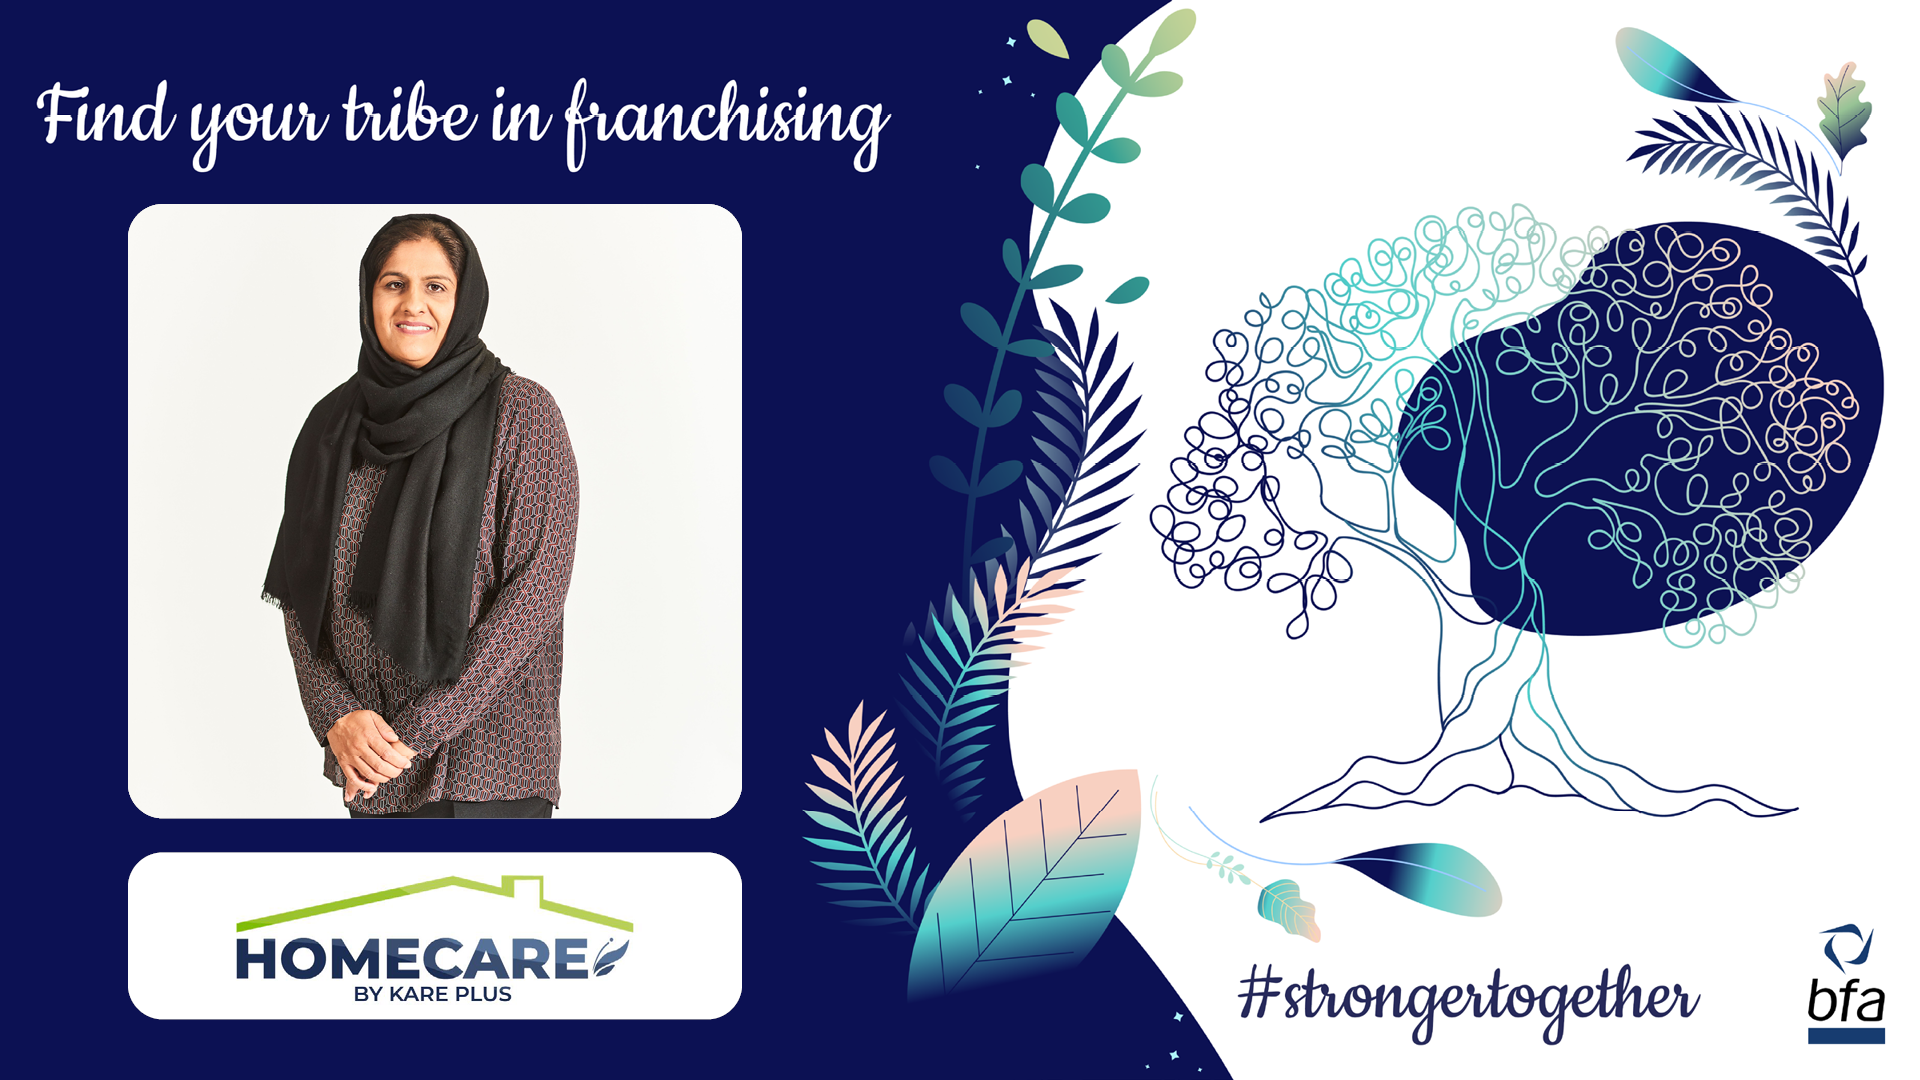 The bfa meets Farzana Rahman, franchisee at Homecare by Kare Plus